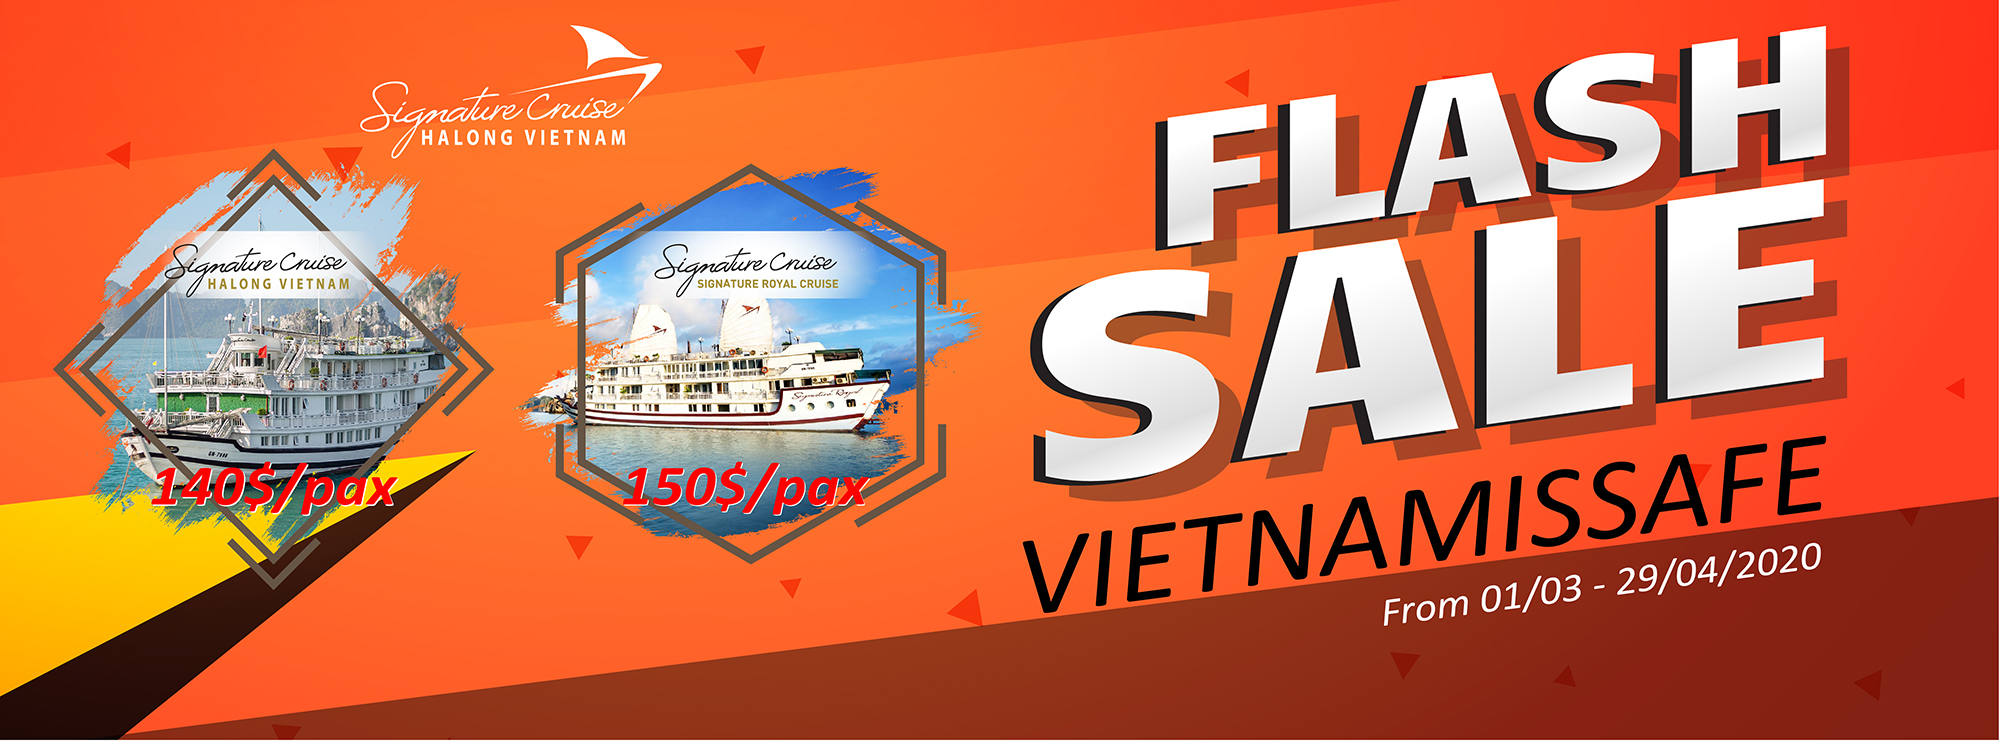 VIETNAMISSAFE Flash Promotions - Signature Halong Cruise